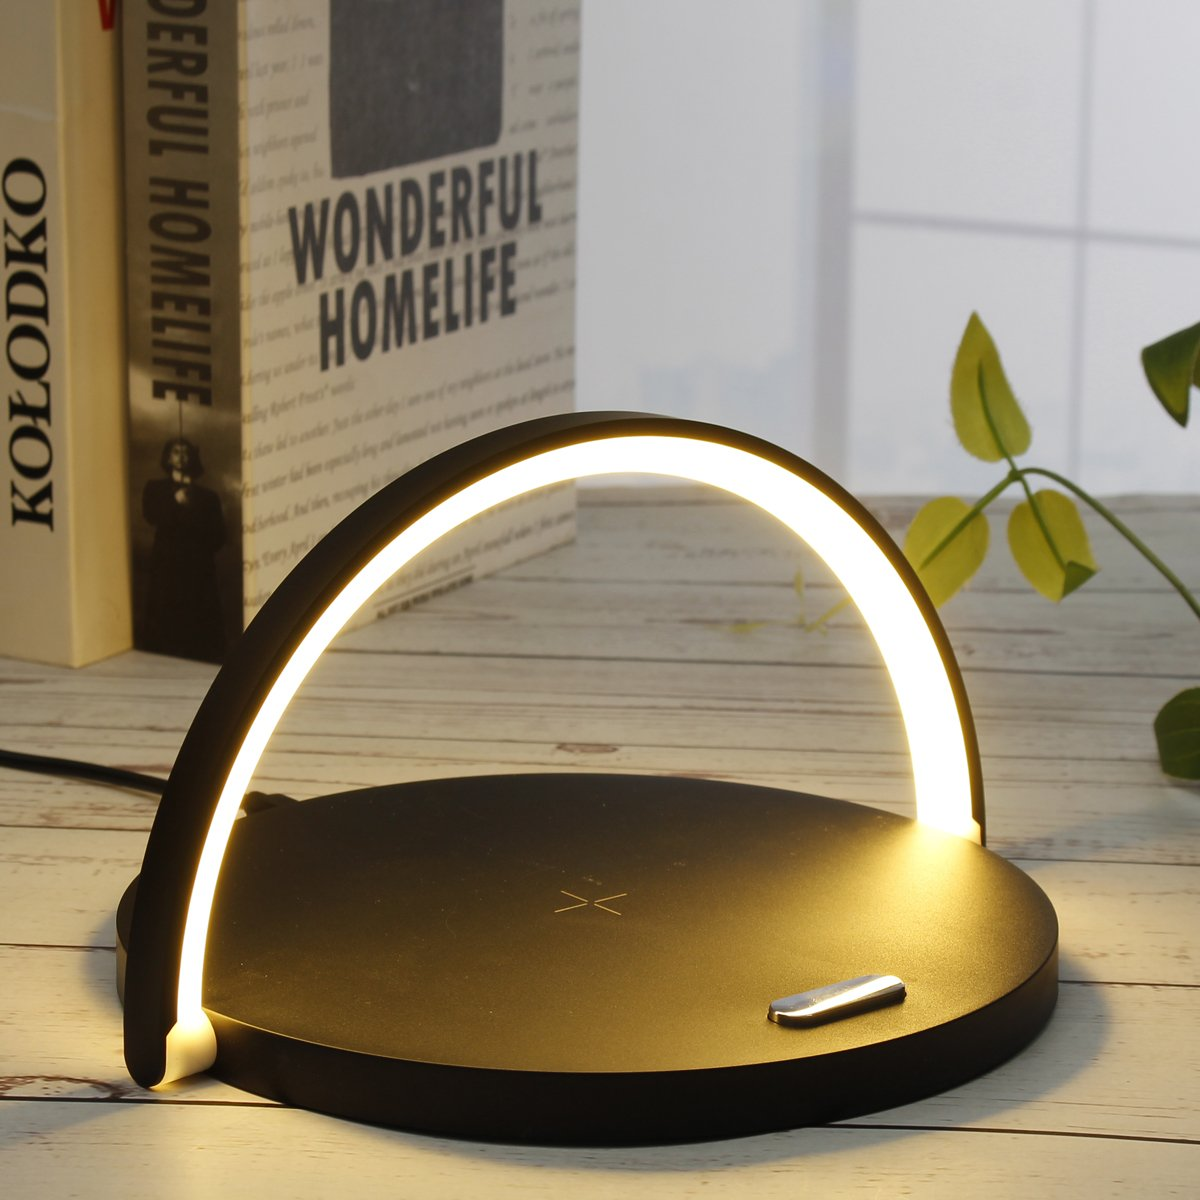 Smart LED Night Light Qi Wireless Charge Lamp For iPhone Samsung - Black - Mobile Phone Chargers